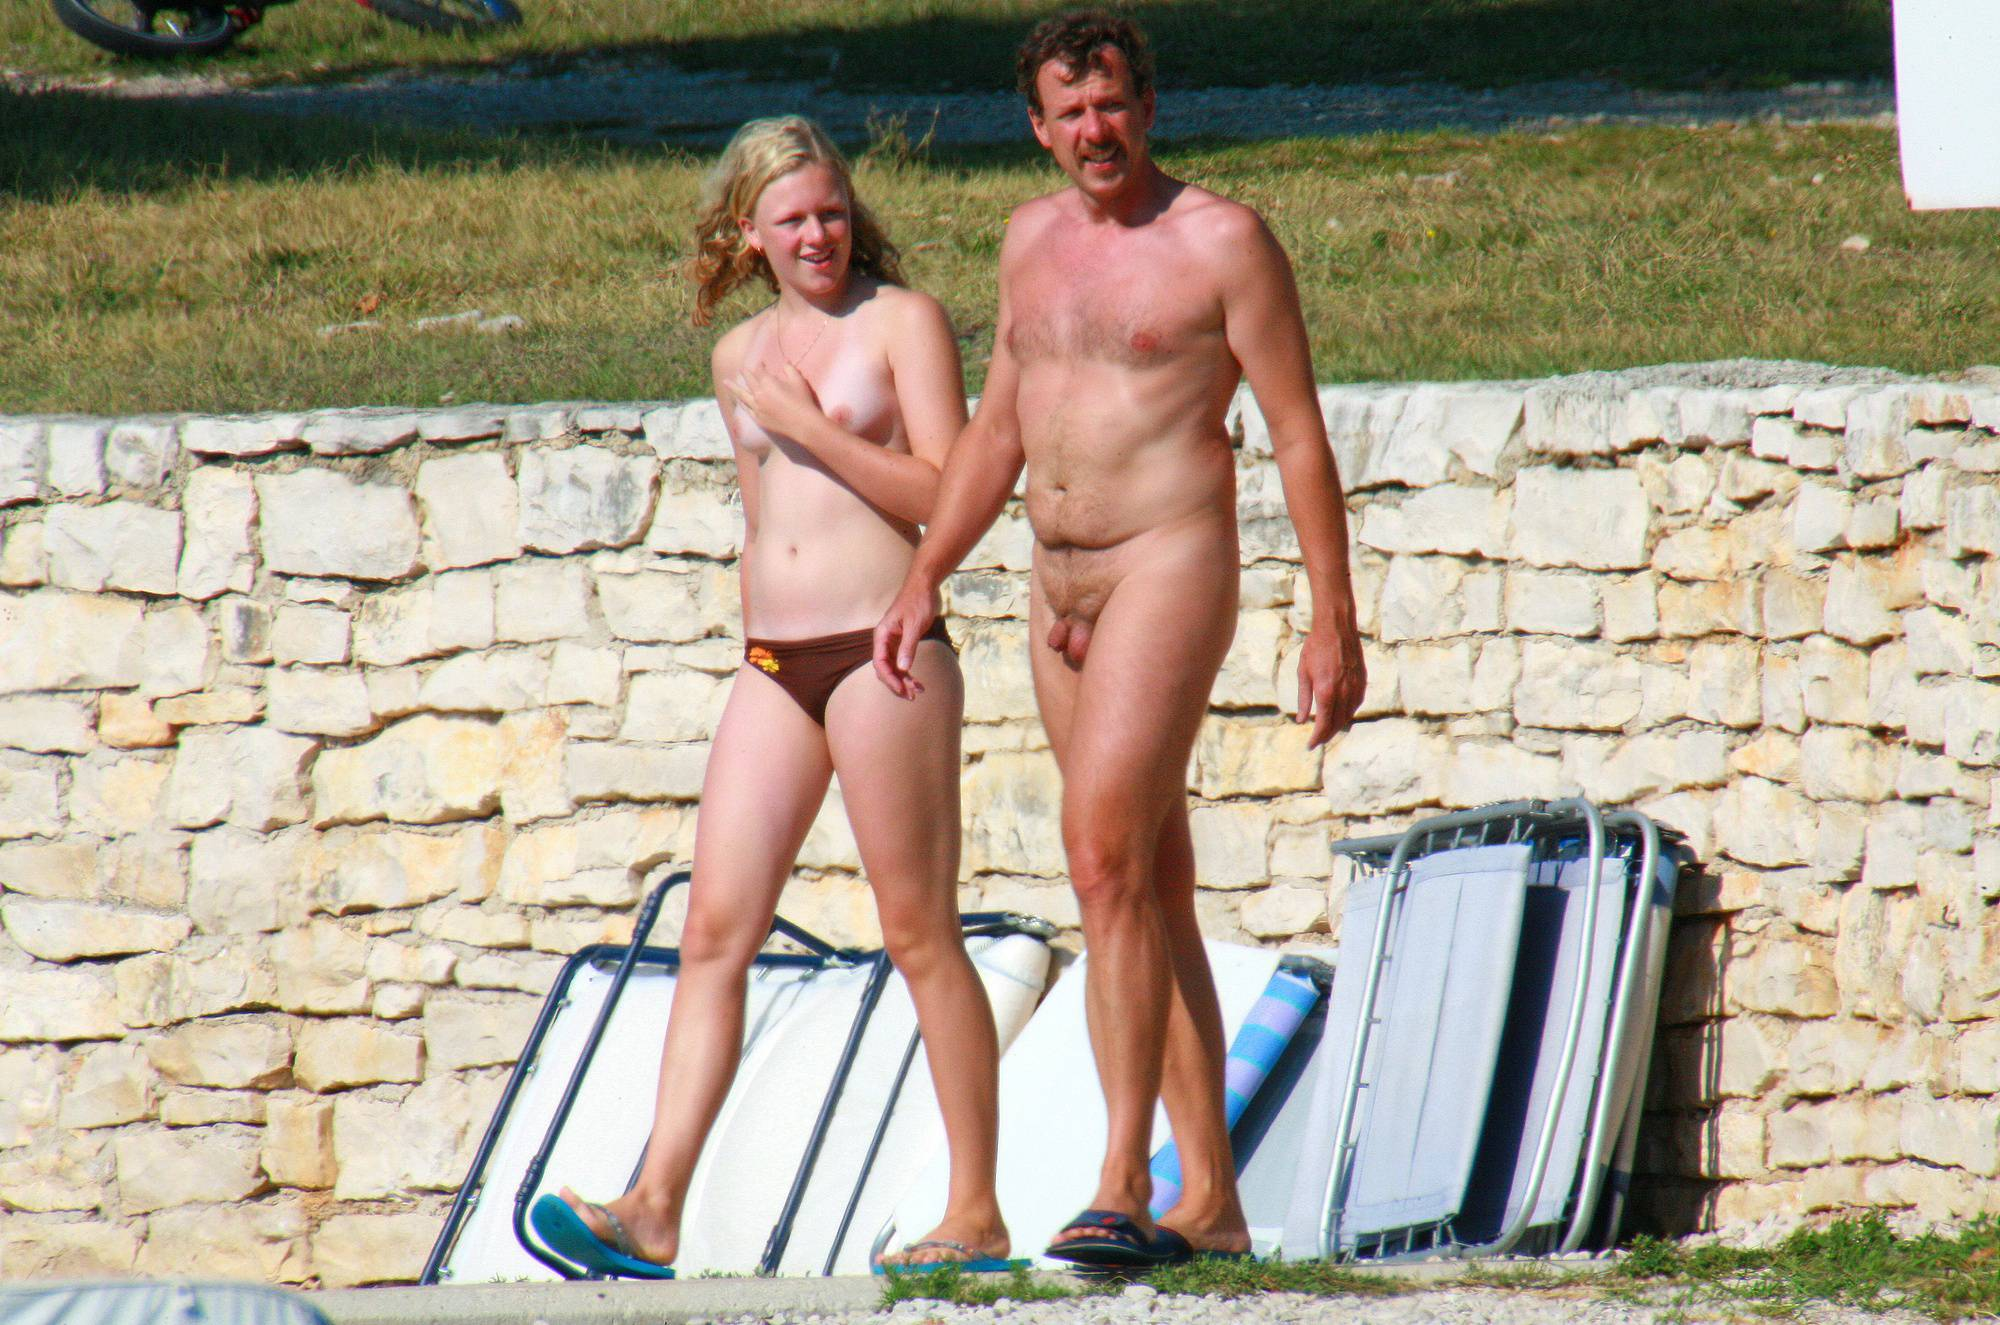 Nudist Pics Ula FKK Wall-Side Families - 1